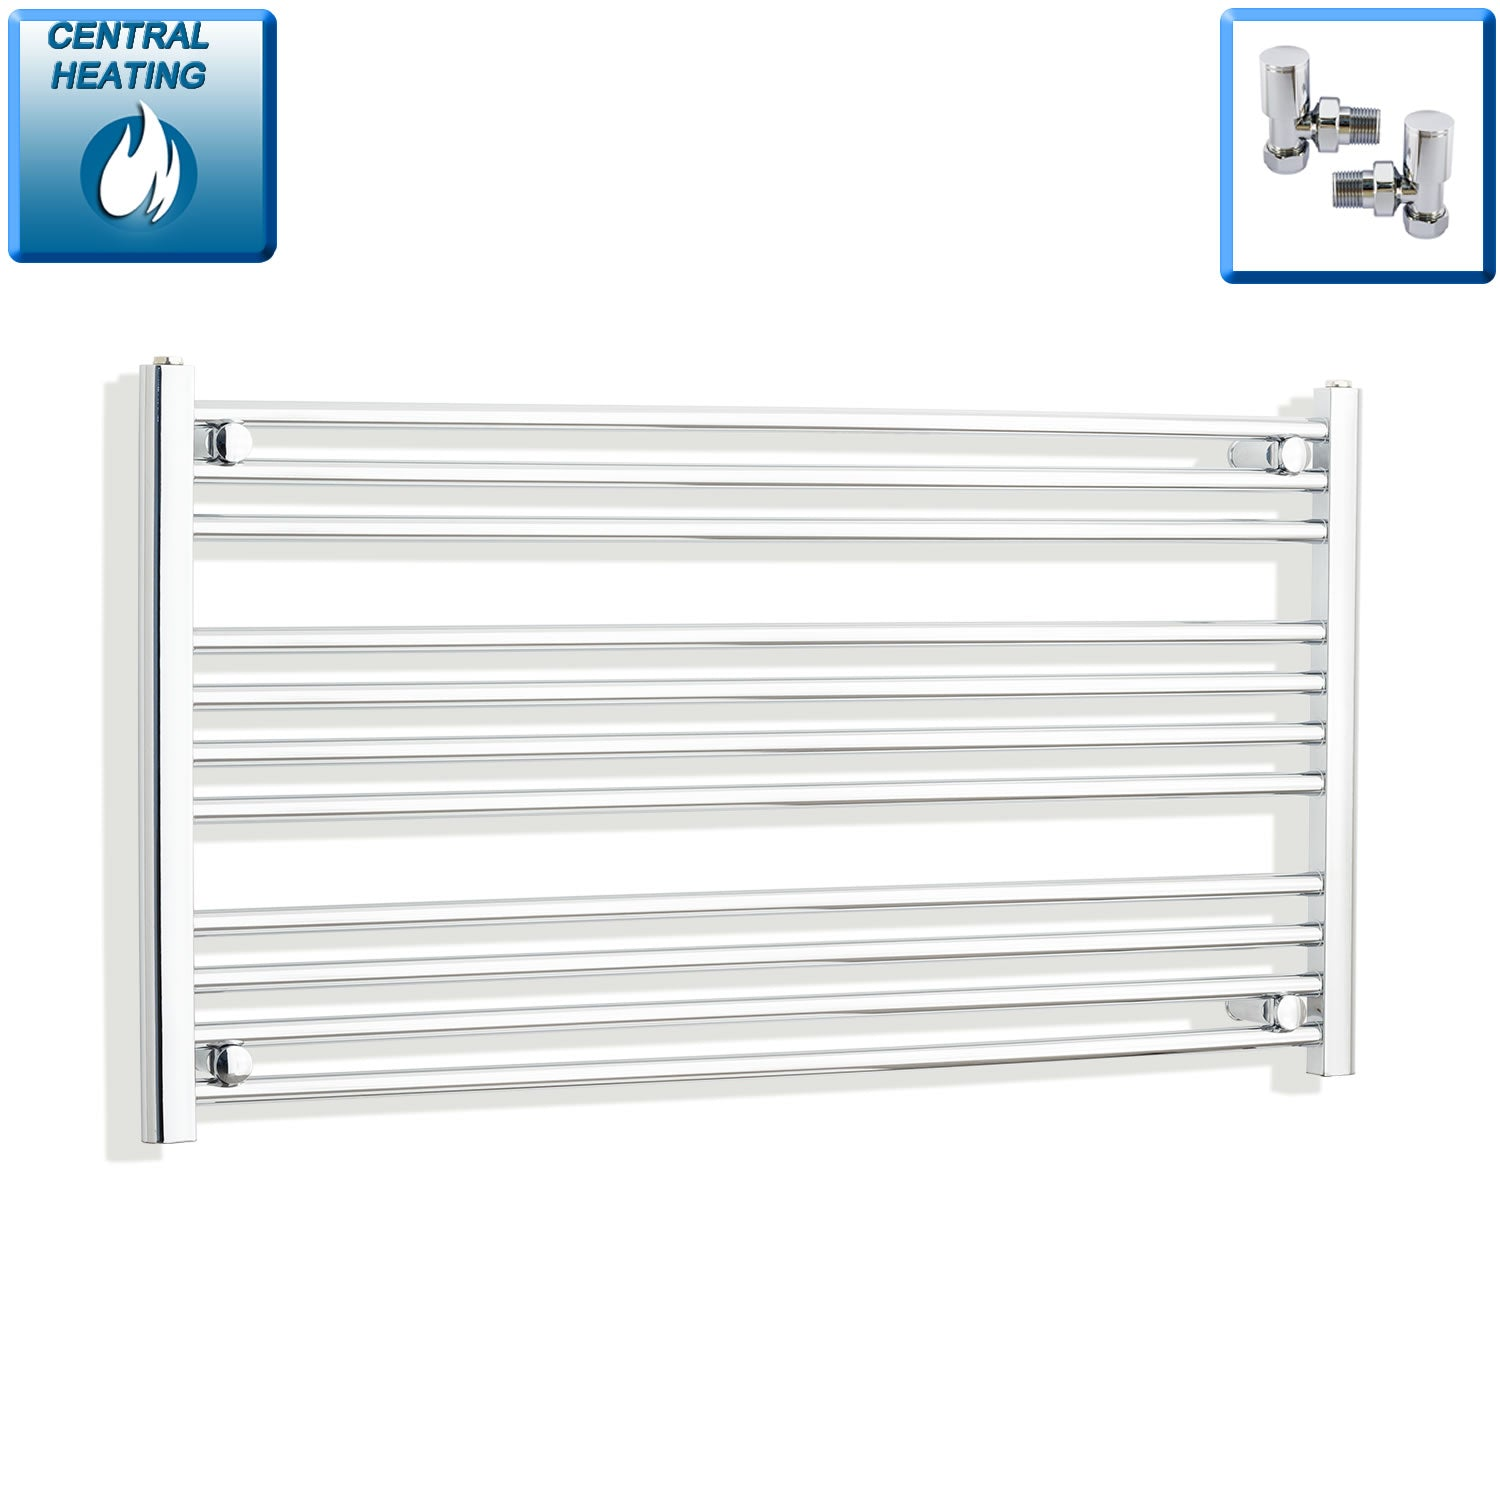 1000mm Wide 600mm High Chrome Towel Rail Radiator With Angled Valve